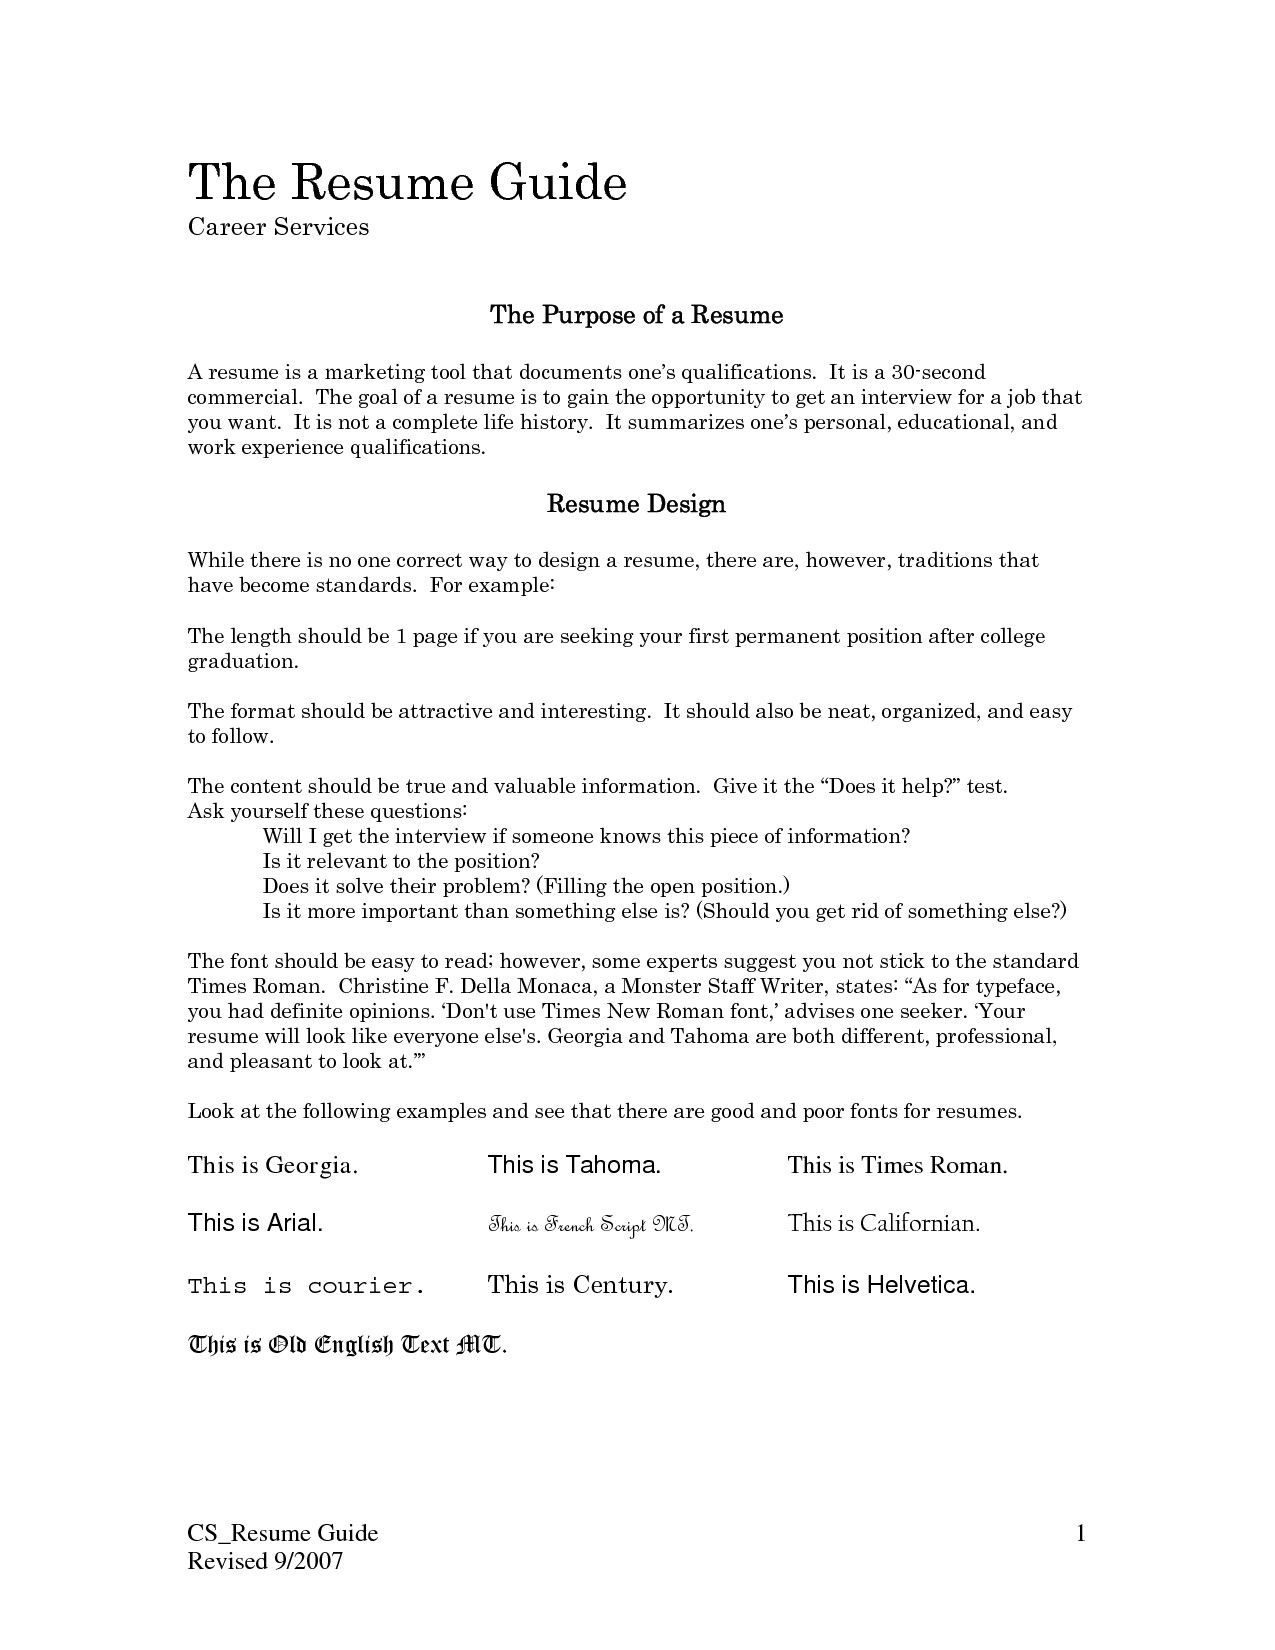 First Job Resume Examples, First Job Resume Examples